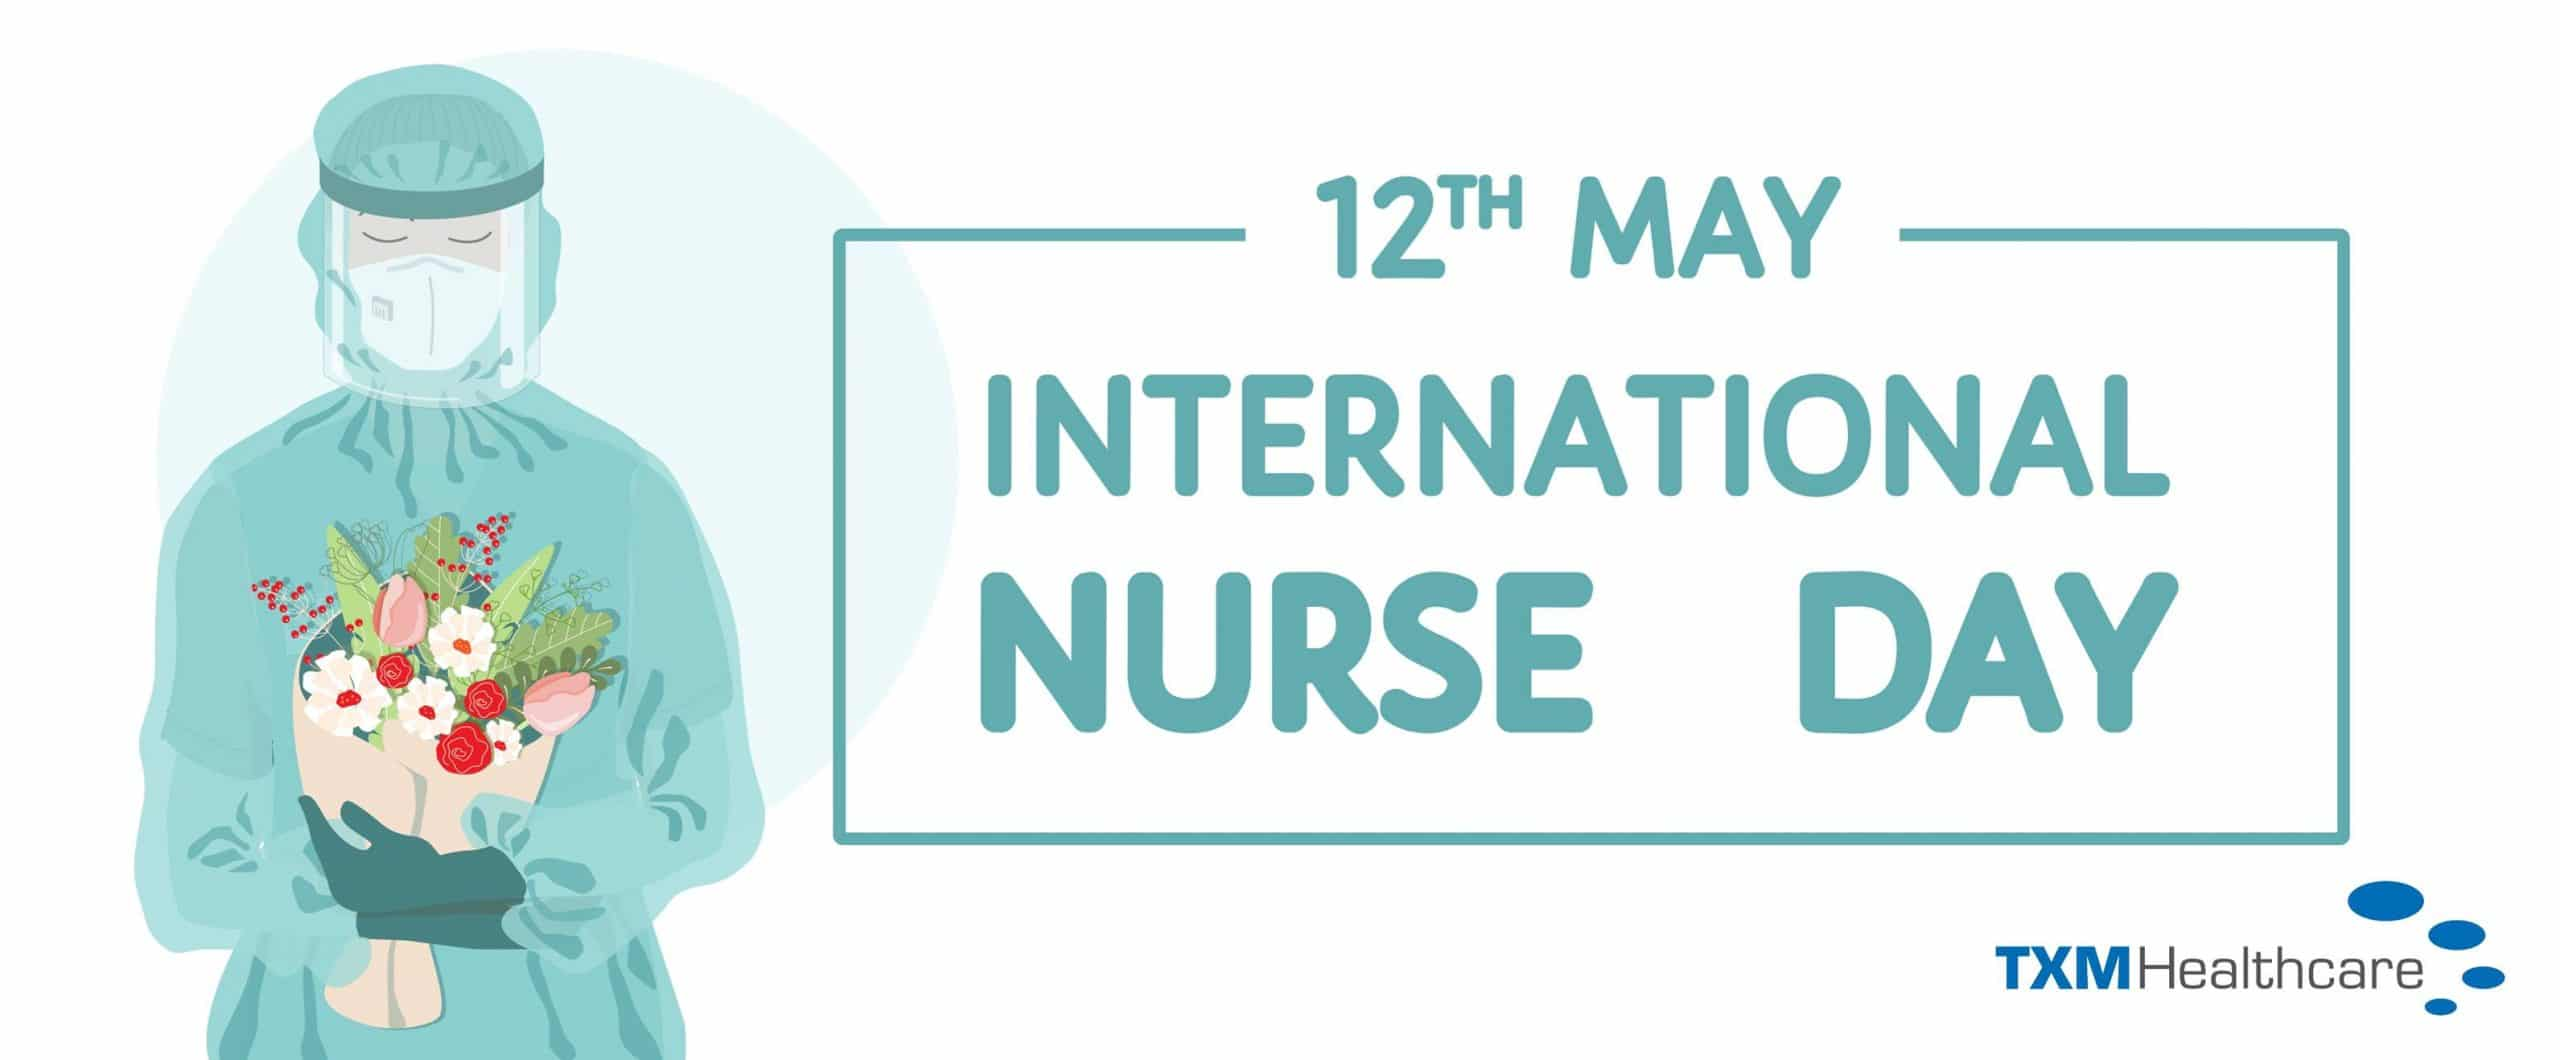 Today is International Nurse Day – and we are happy to show appreciation and sup…